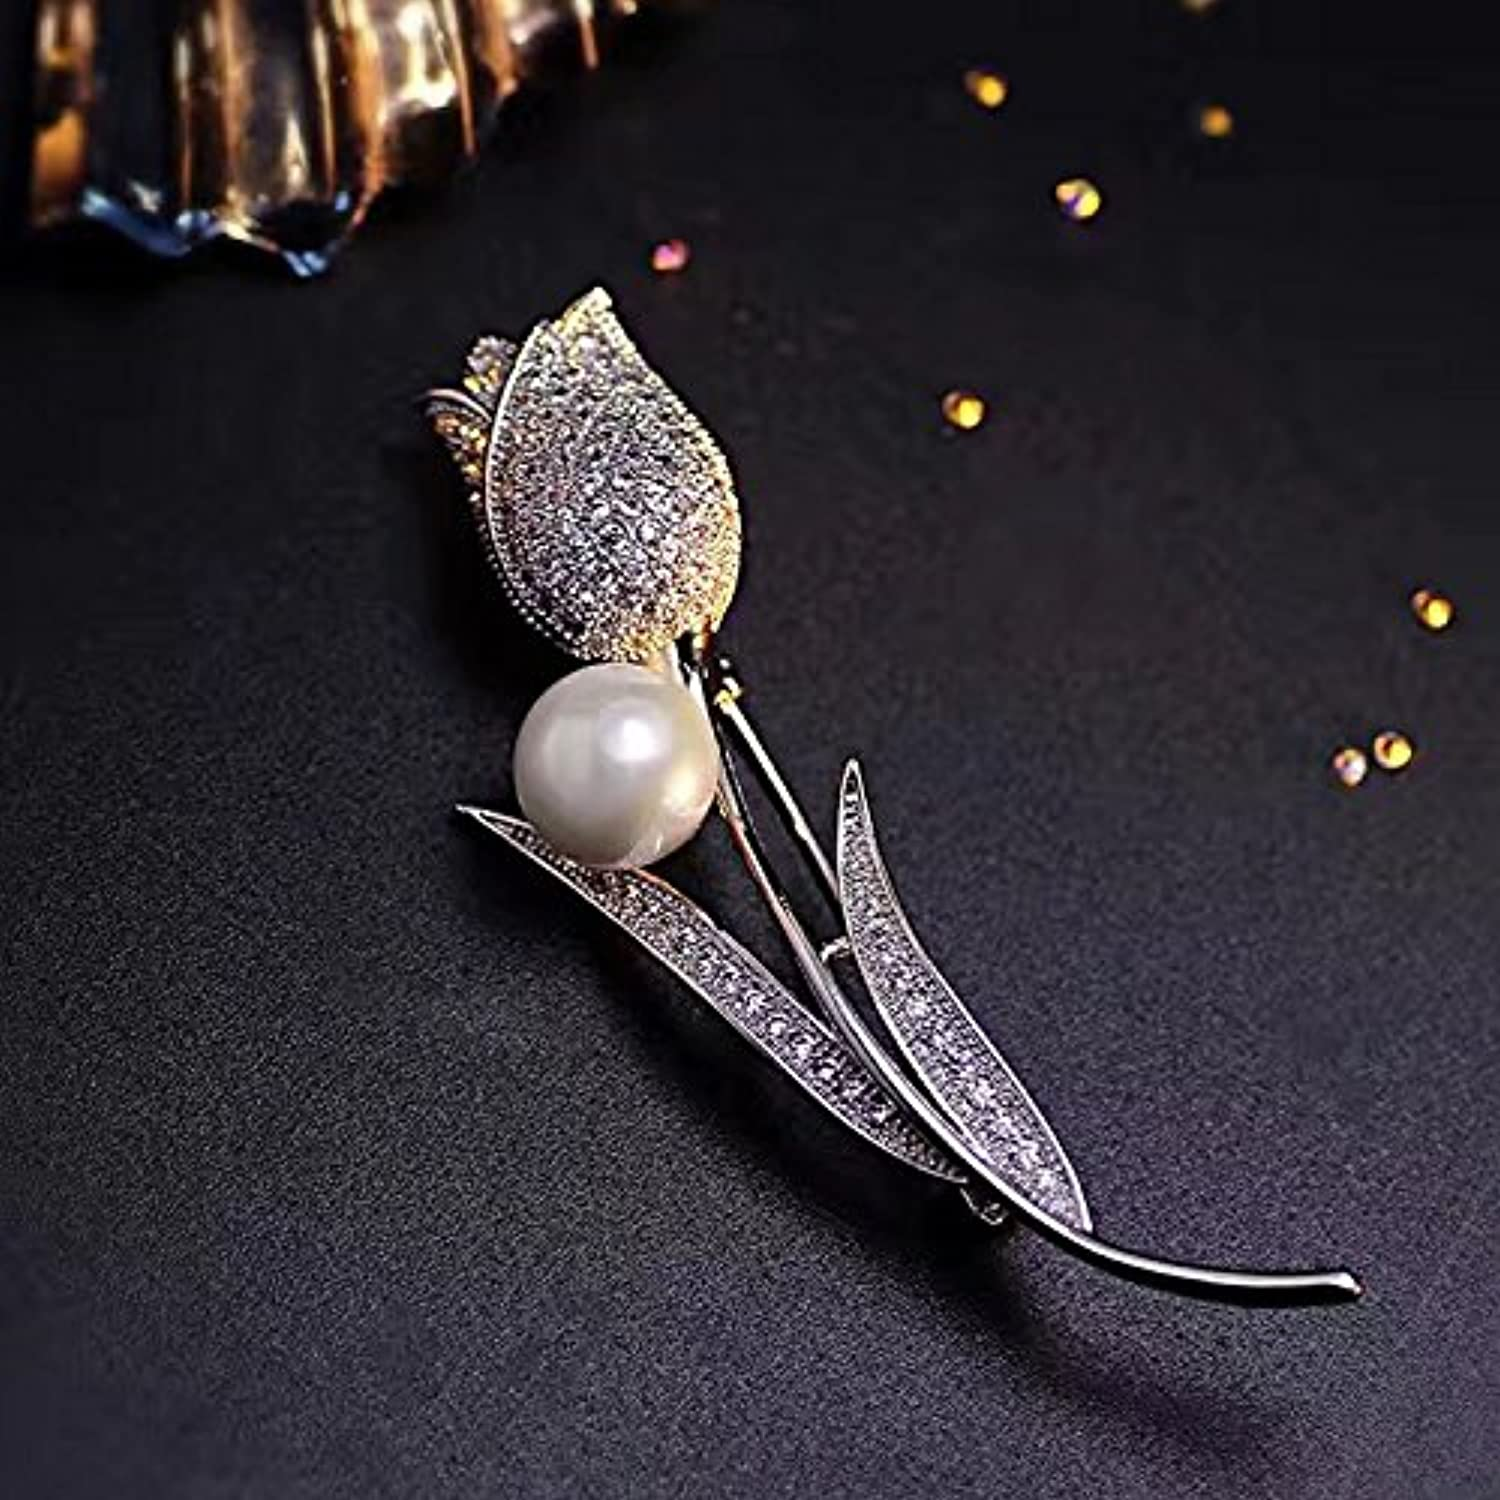 Tulips Daffodils and More Diamond Drilling Micro Pave can not afto not Fade Pearl Brooch pin Badge Accessories